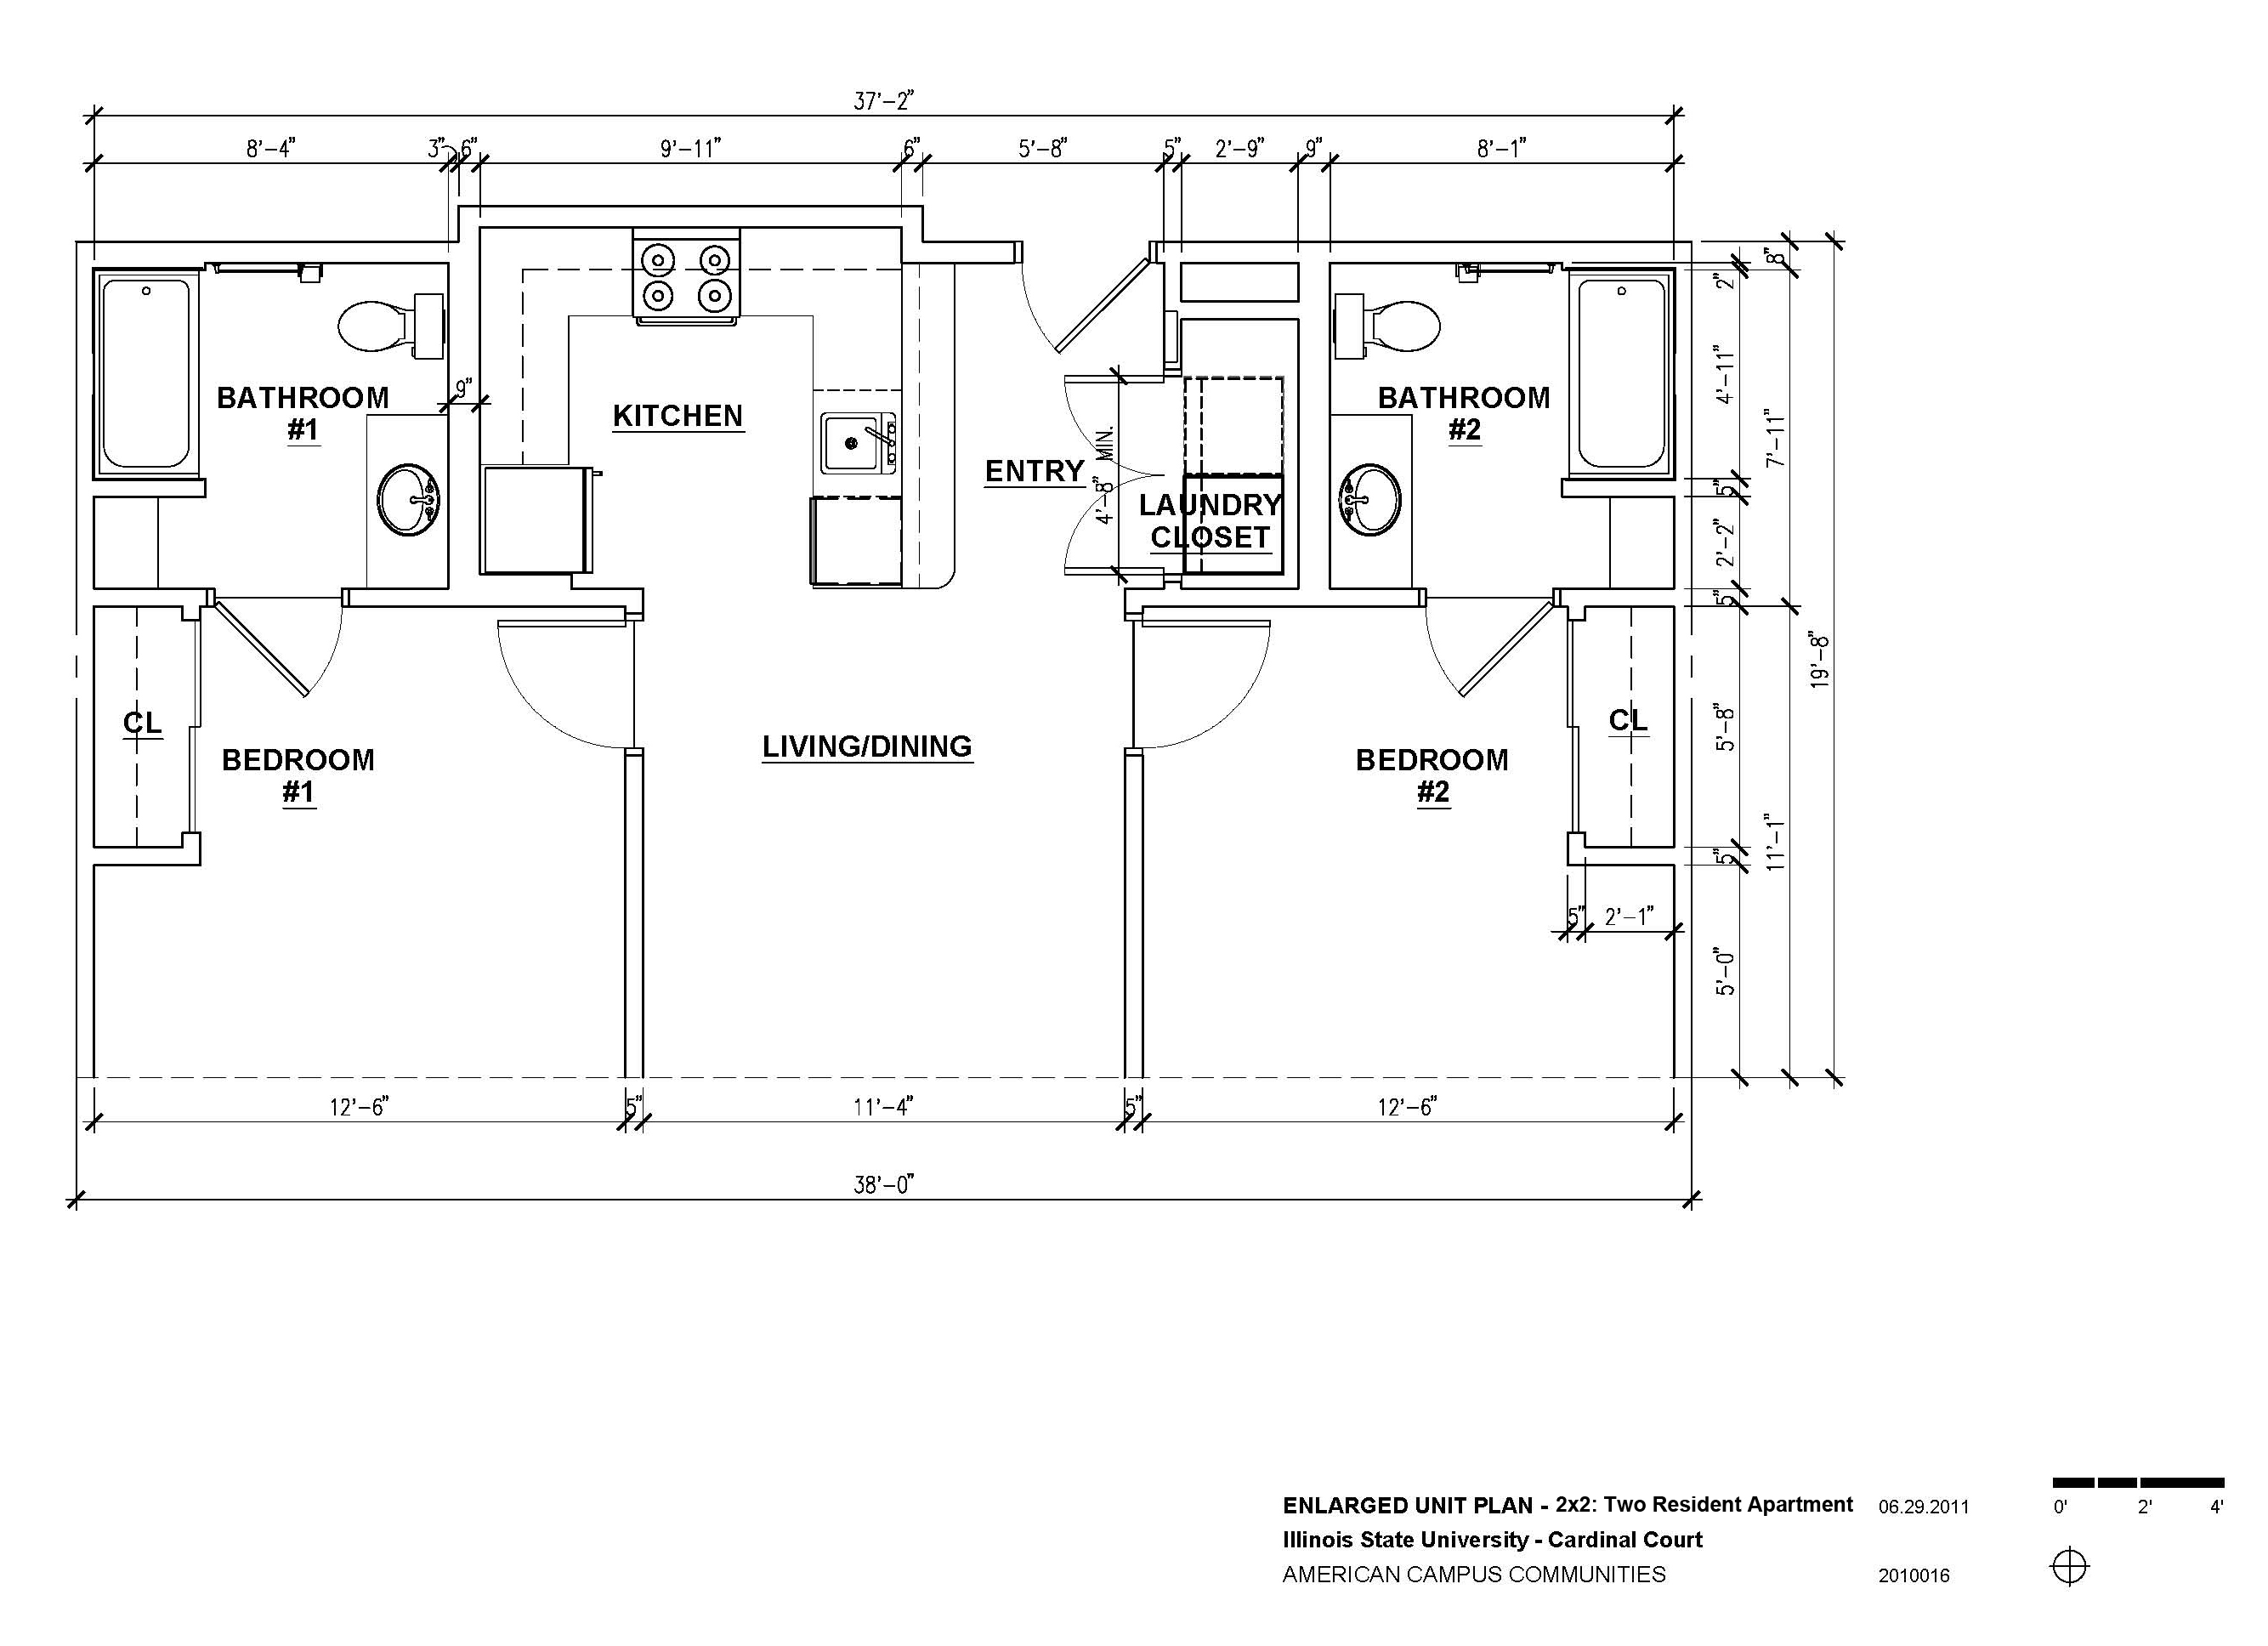 Cardinal Court University Housing Services Illinois State Campus Cable Television System Tv Definition And Diagram Floor Plan 3d Layout